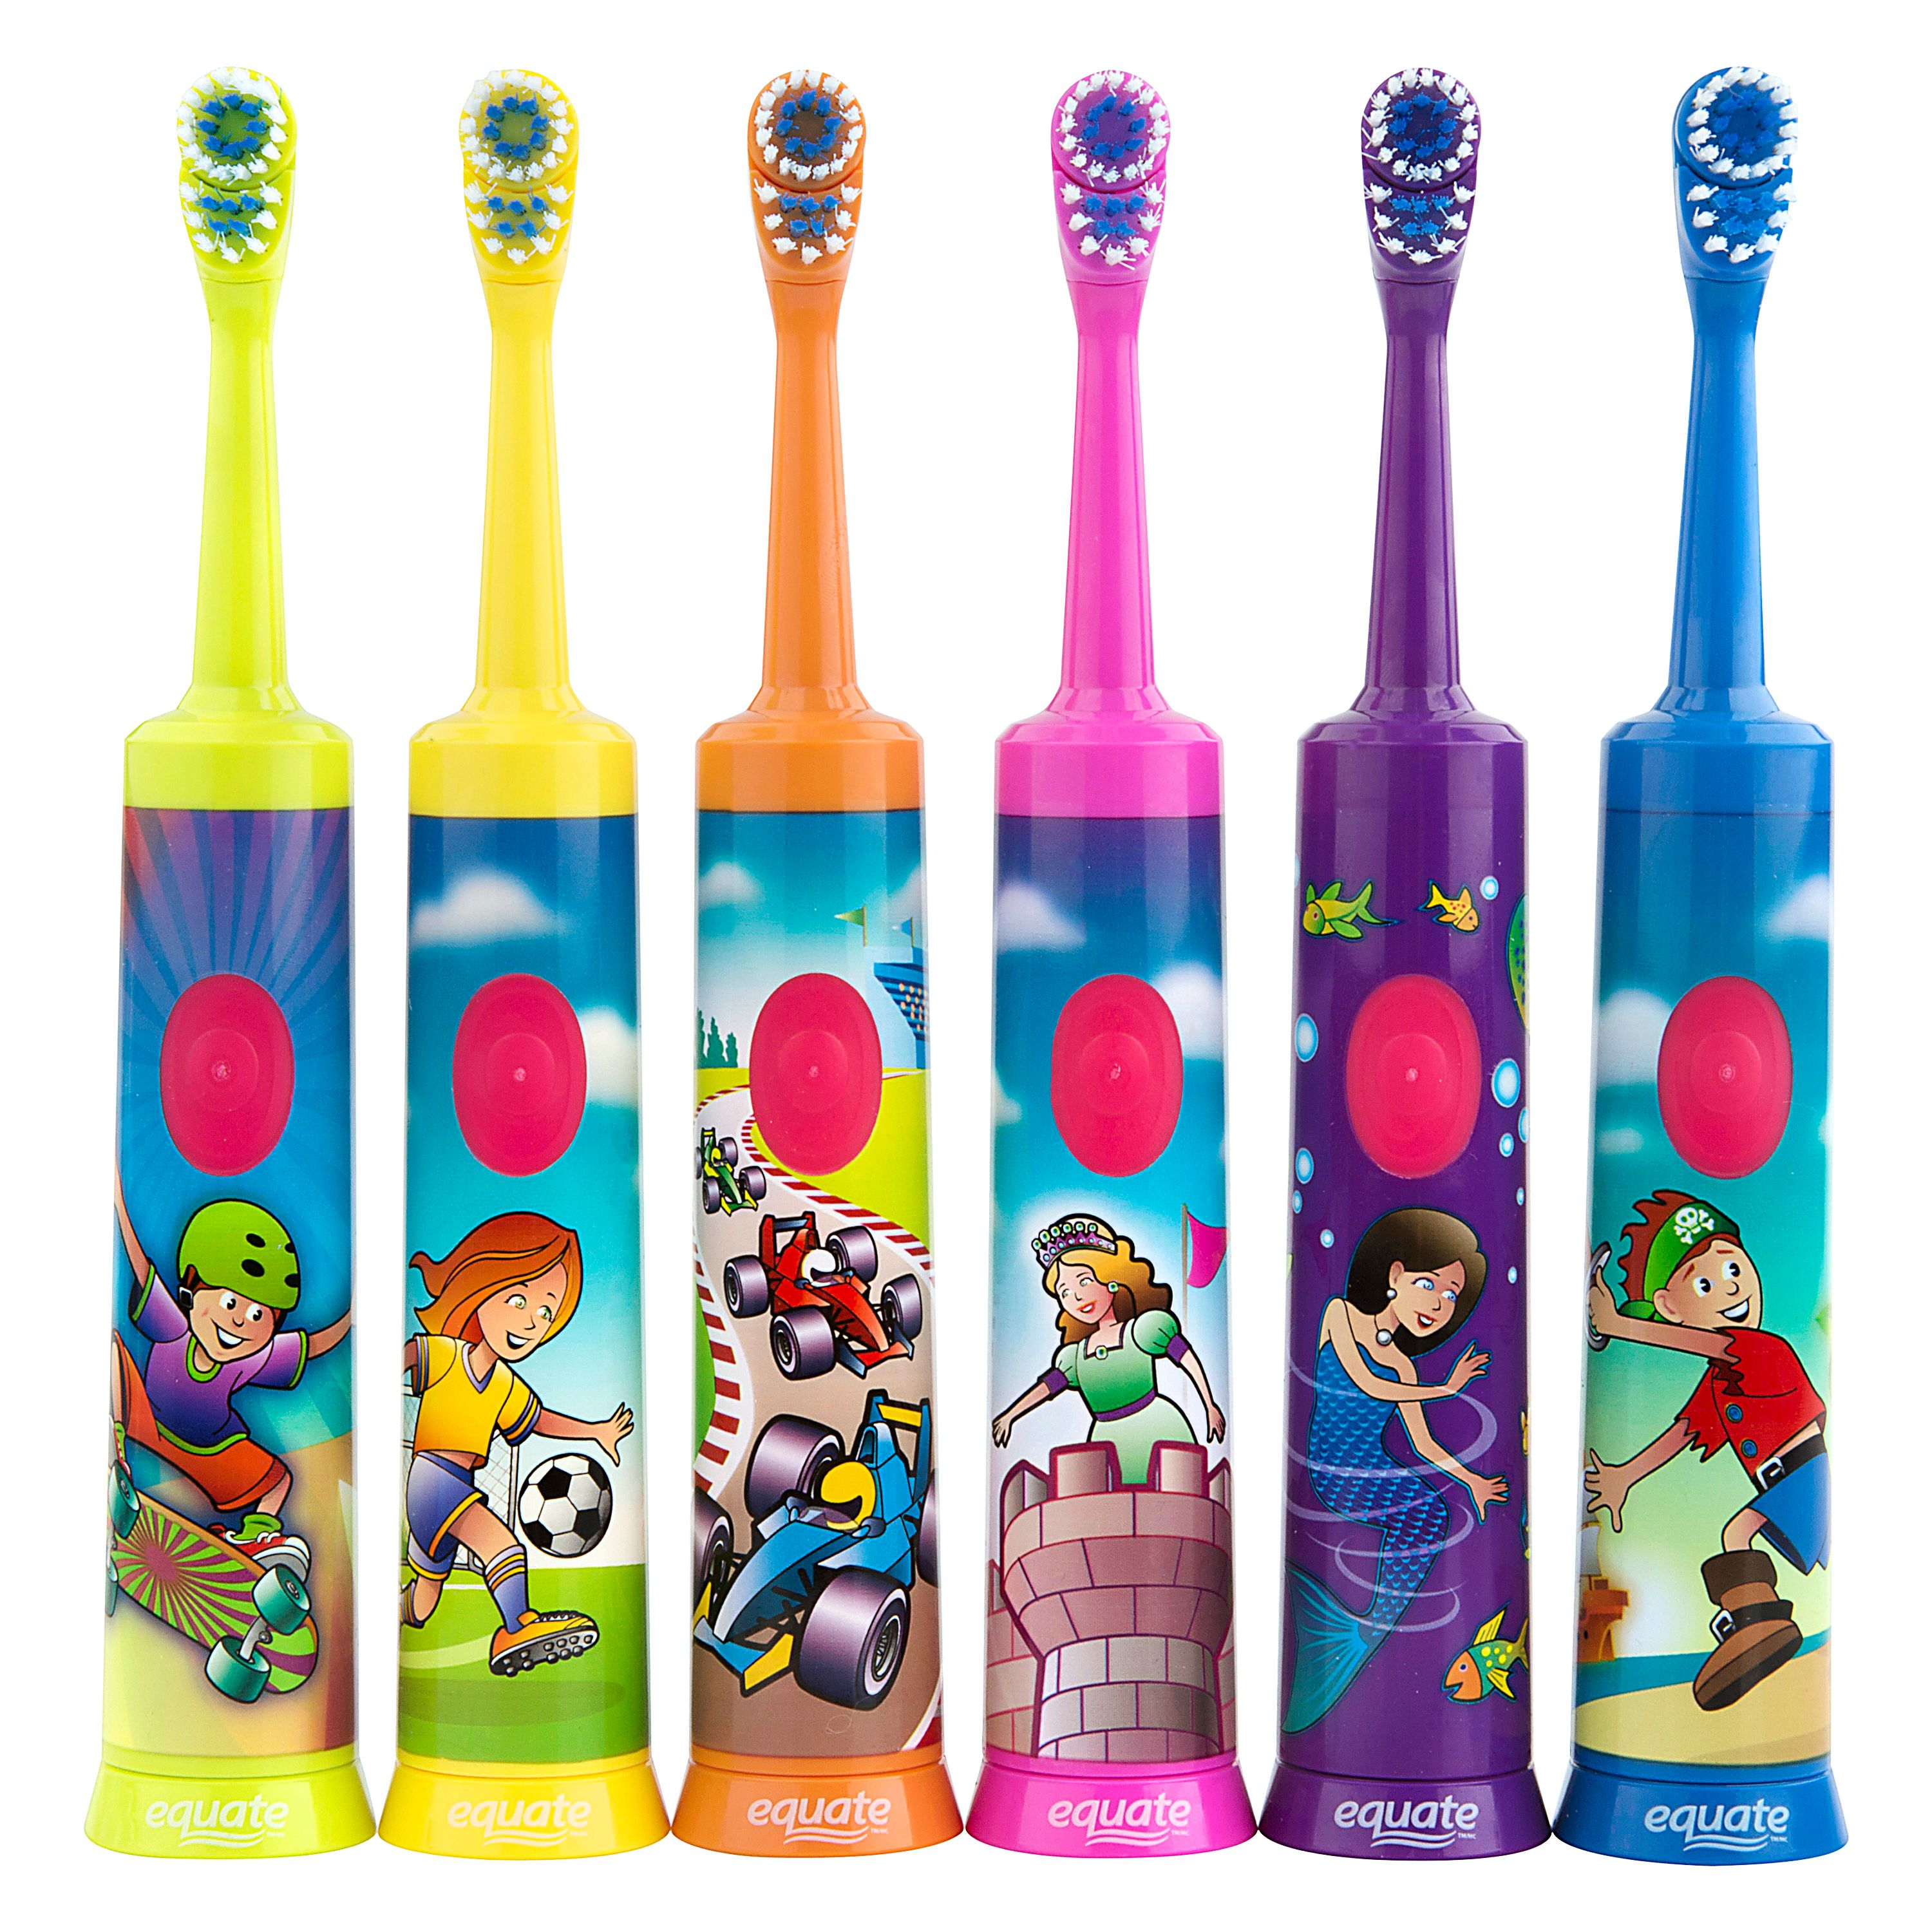 Equate Kids Soft Power Toothbrush, 1 Ct